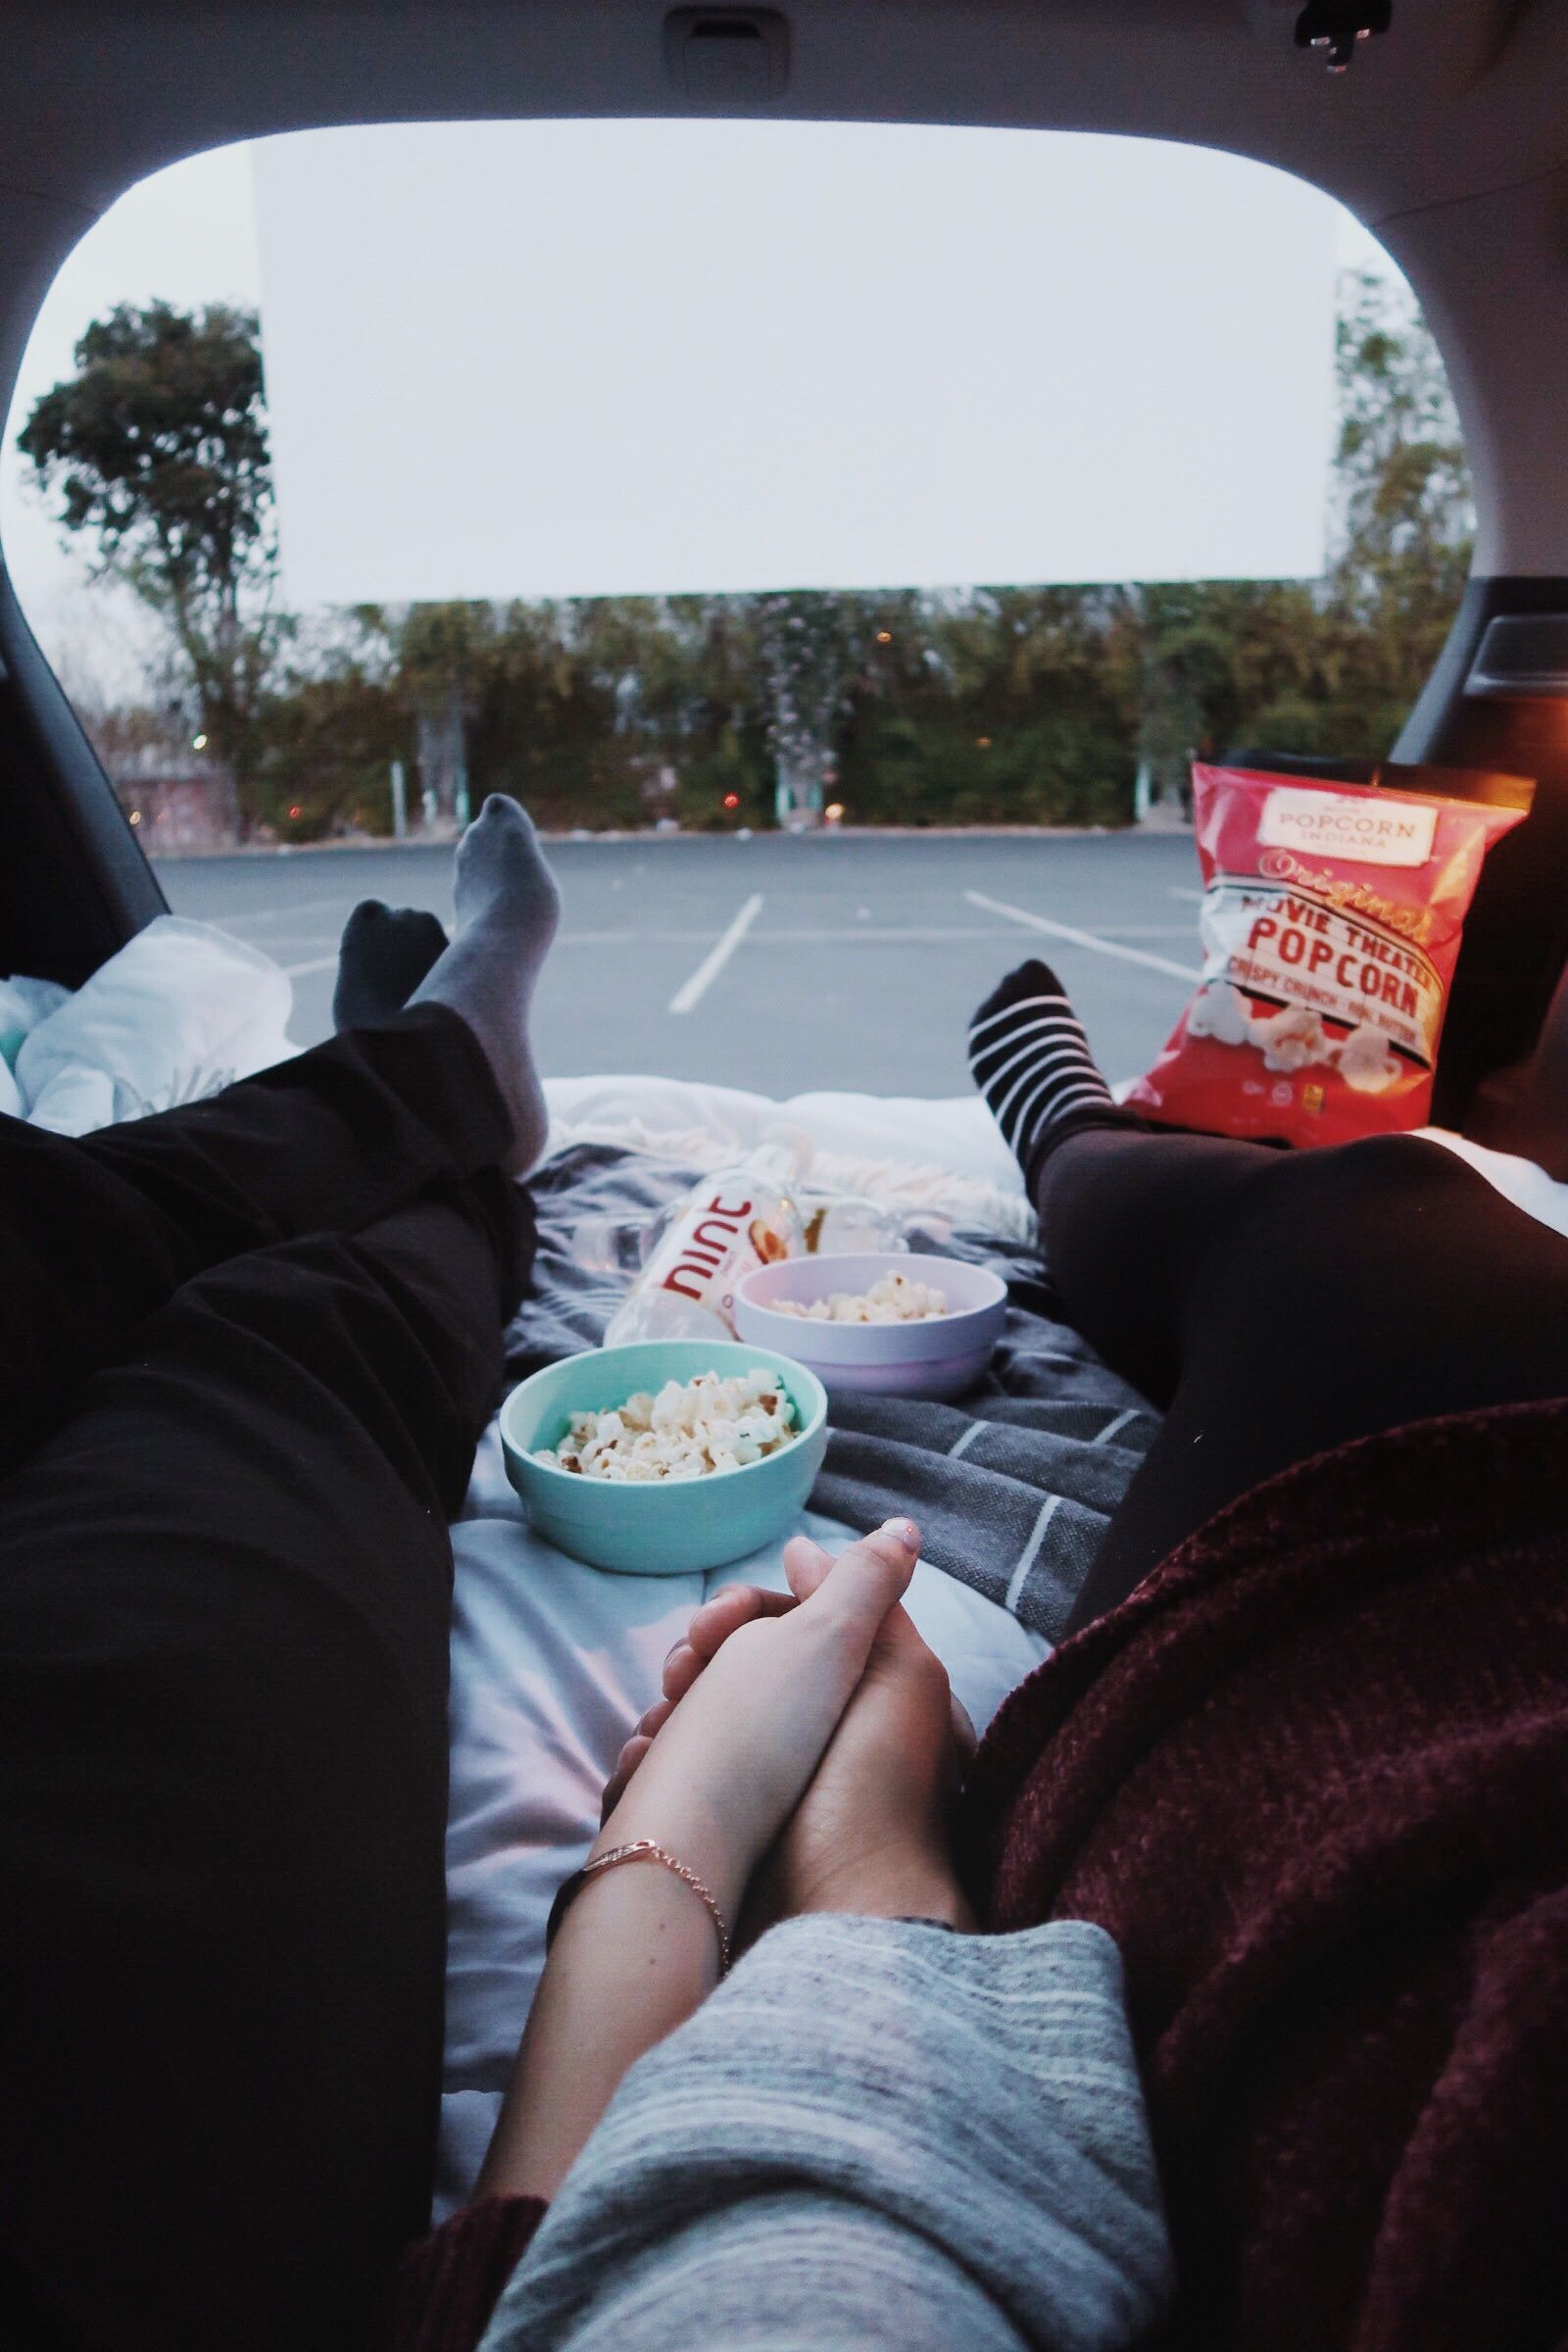 40+ Cute And Romantic Relationship Goals For Teenagers You Dream To Have